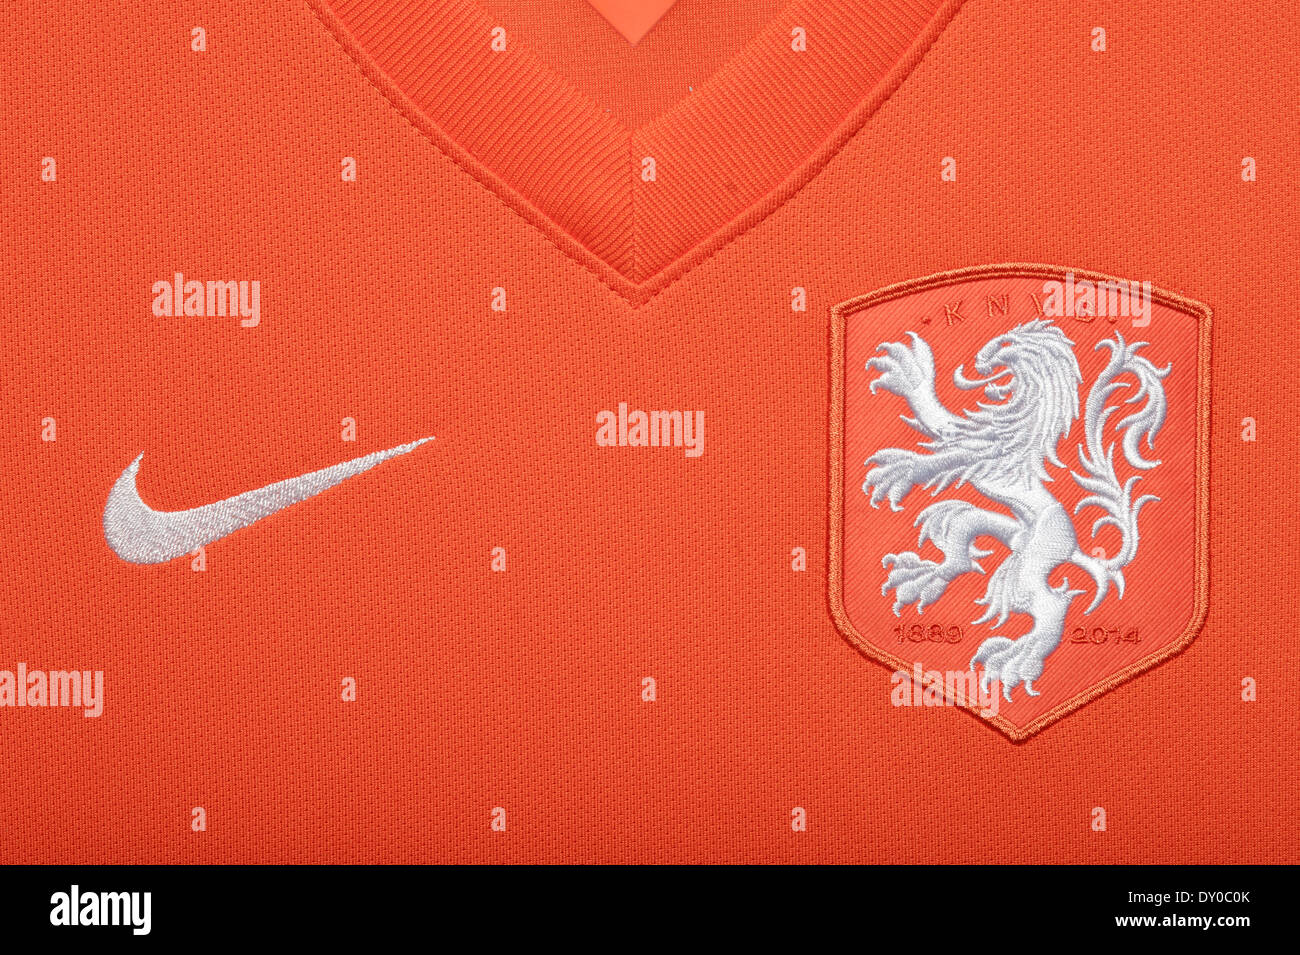 Netherlands National Team Stock Photos & Netherlands ...